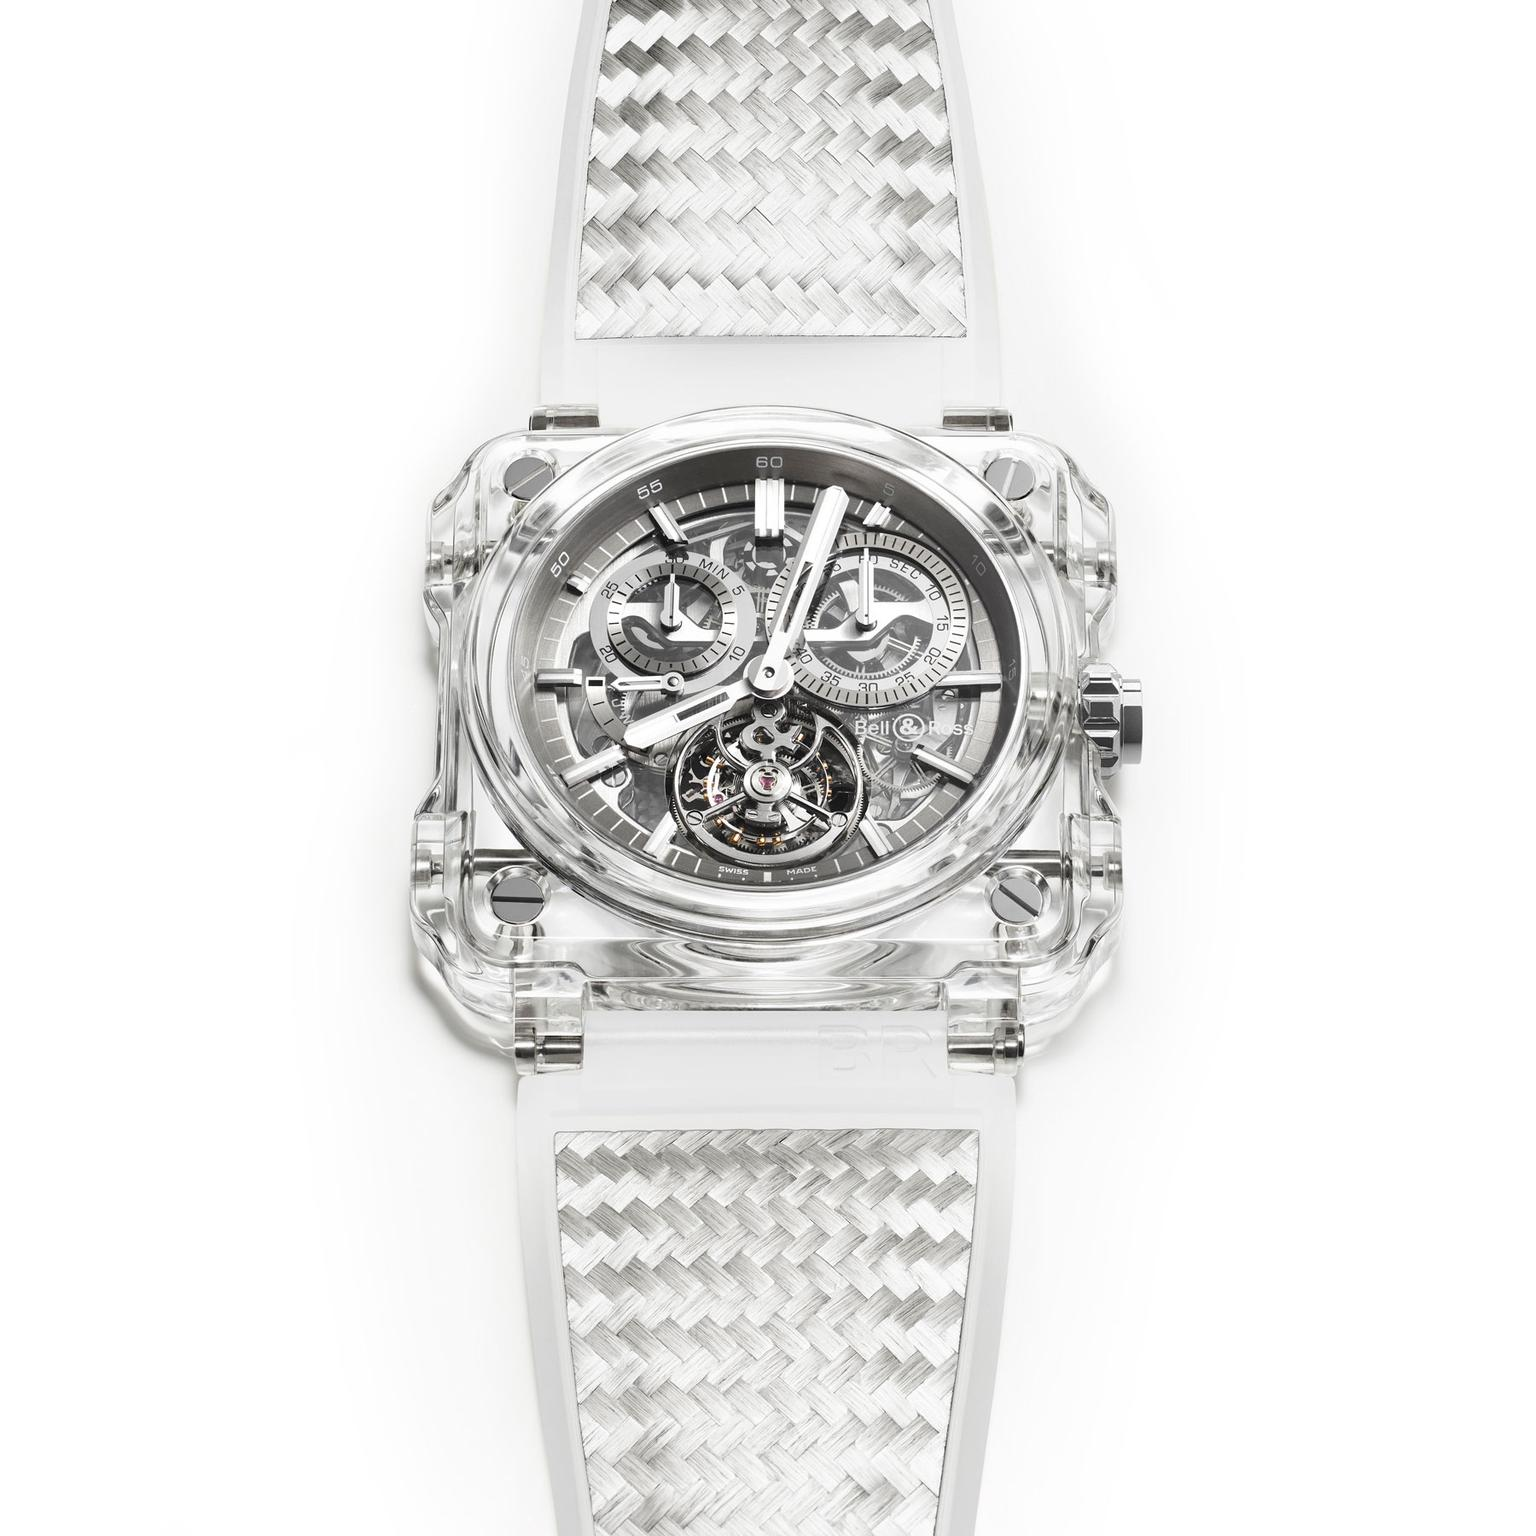 Bell & Ross BR-X1 Chronograph Tourbillon watch